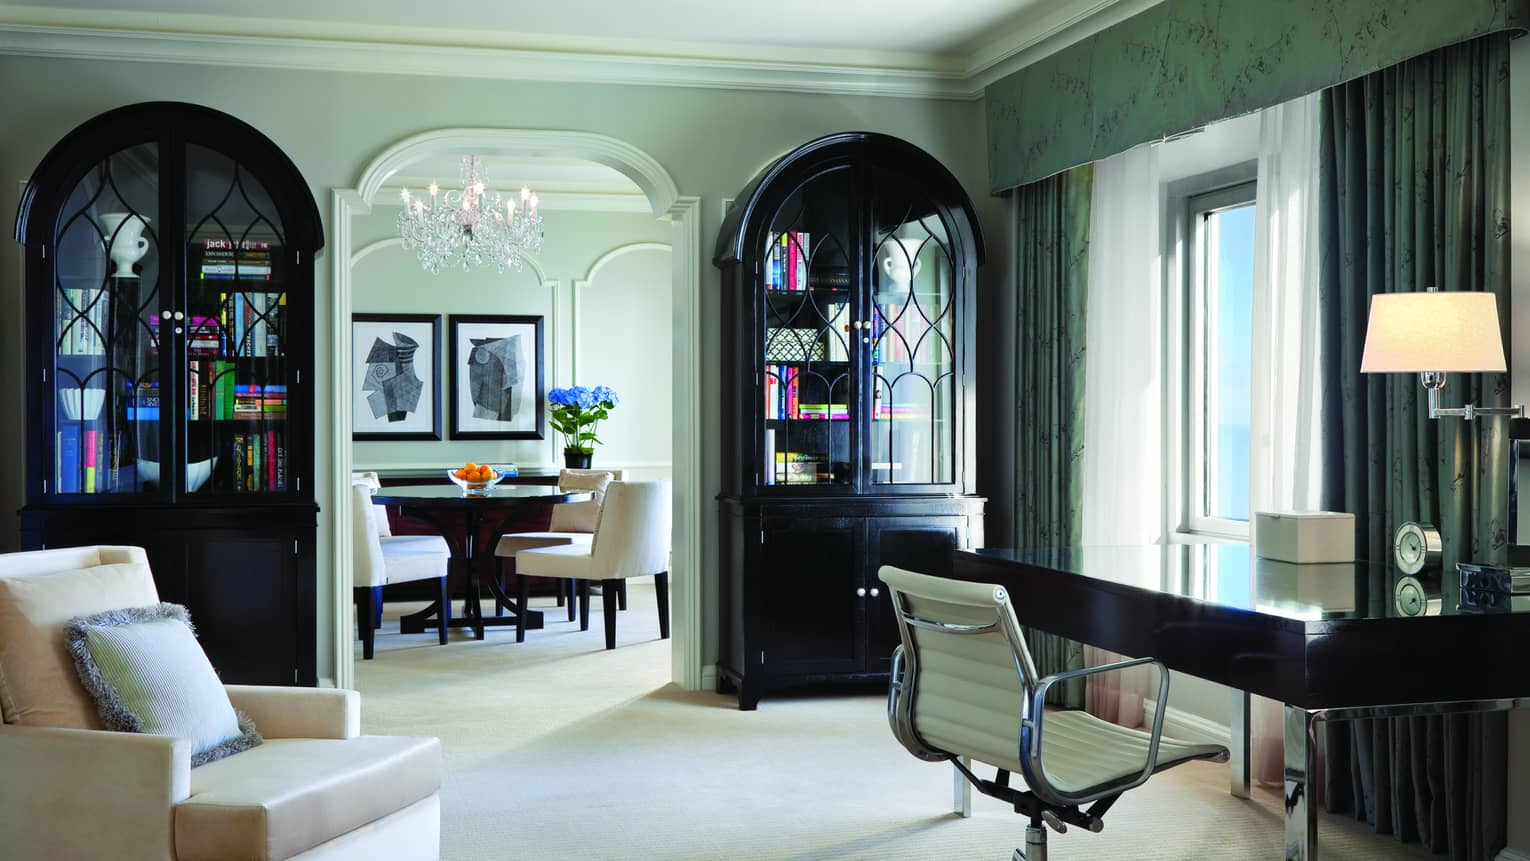 The 46th floor sunny Author Suite sitting room with two bookcases, writing desk and armchair, door to dining room